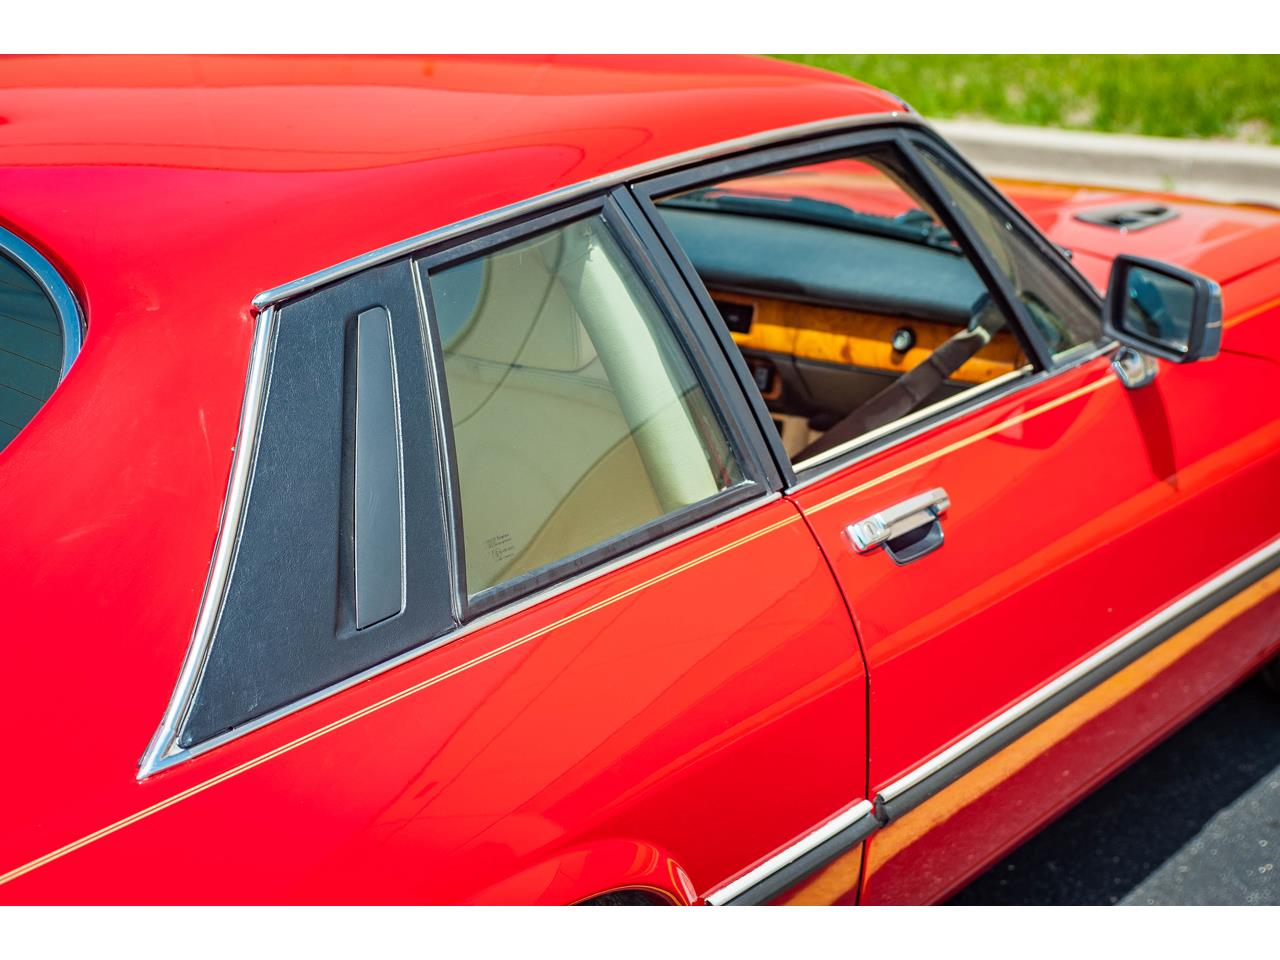 Large Picture of '89 XJS - $20,000.00 Offered by Gateway Classic Cars - St. Louis - QB9L